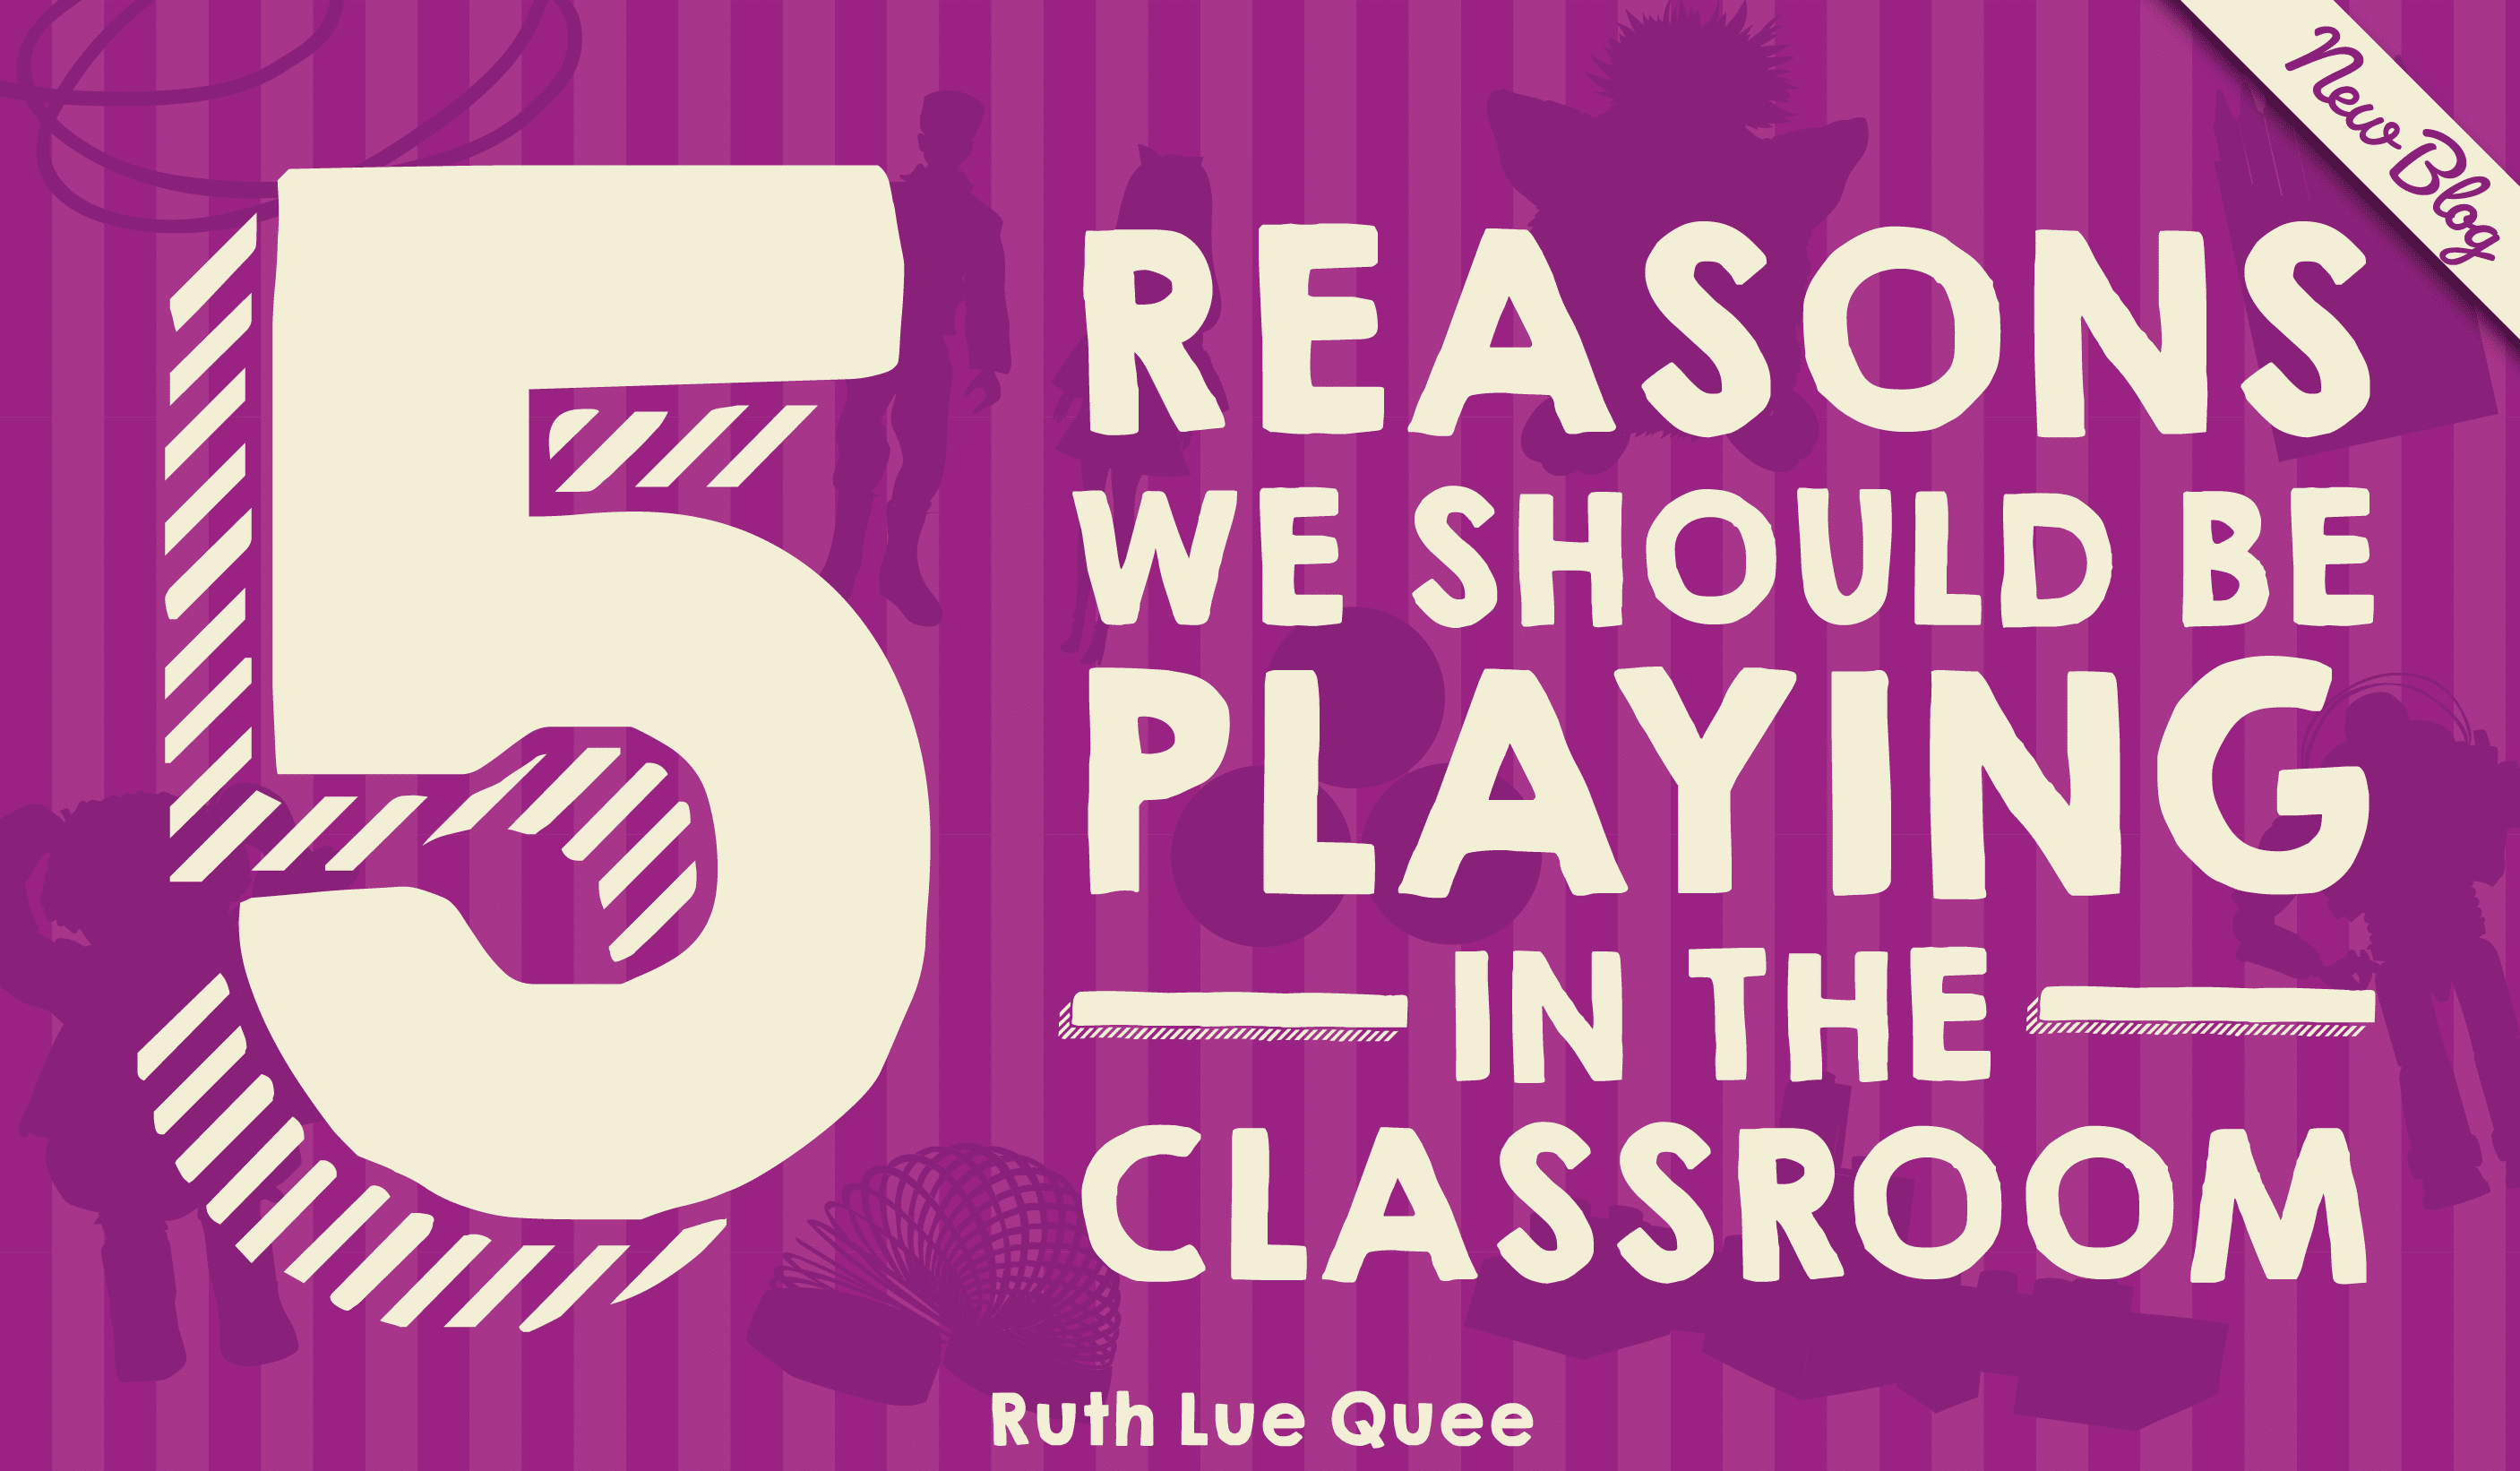 5 reasons we should be playing in the classroom!